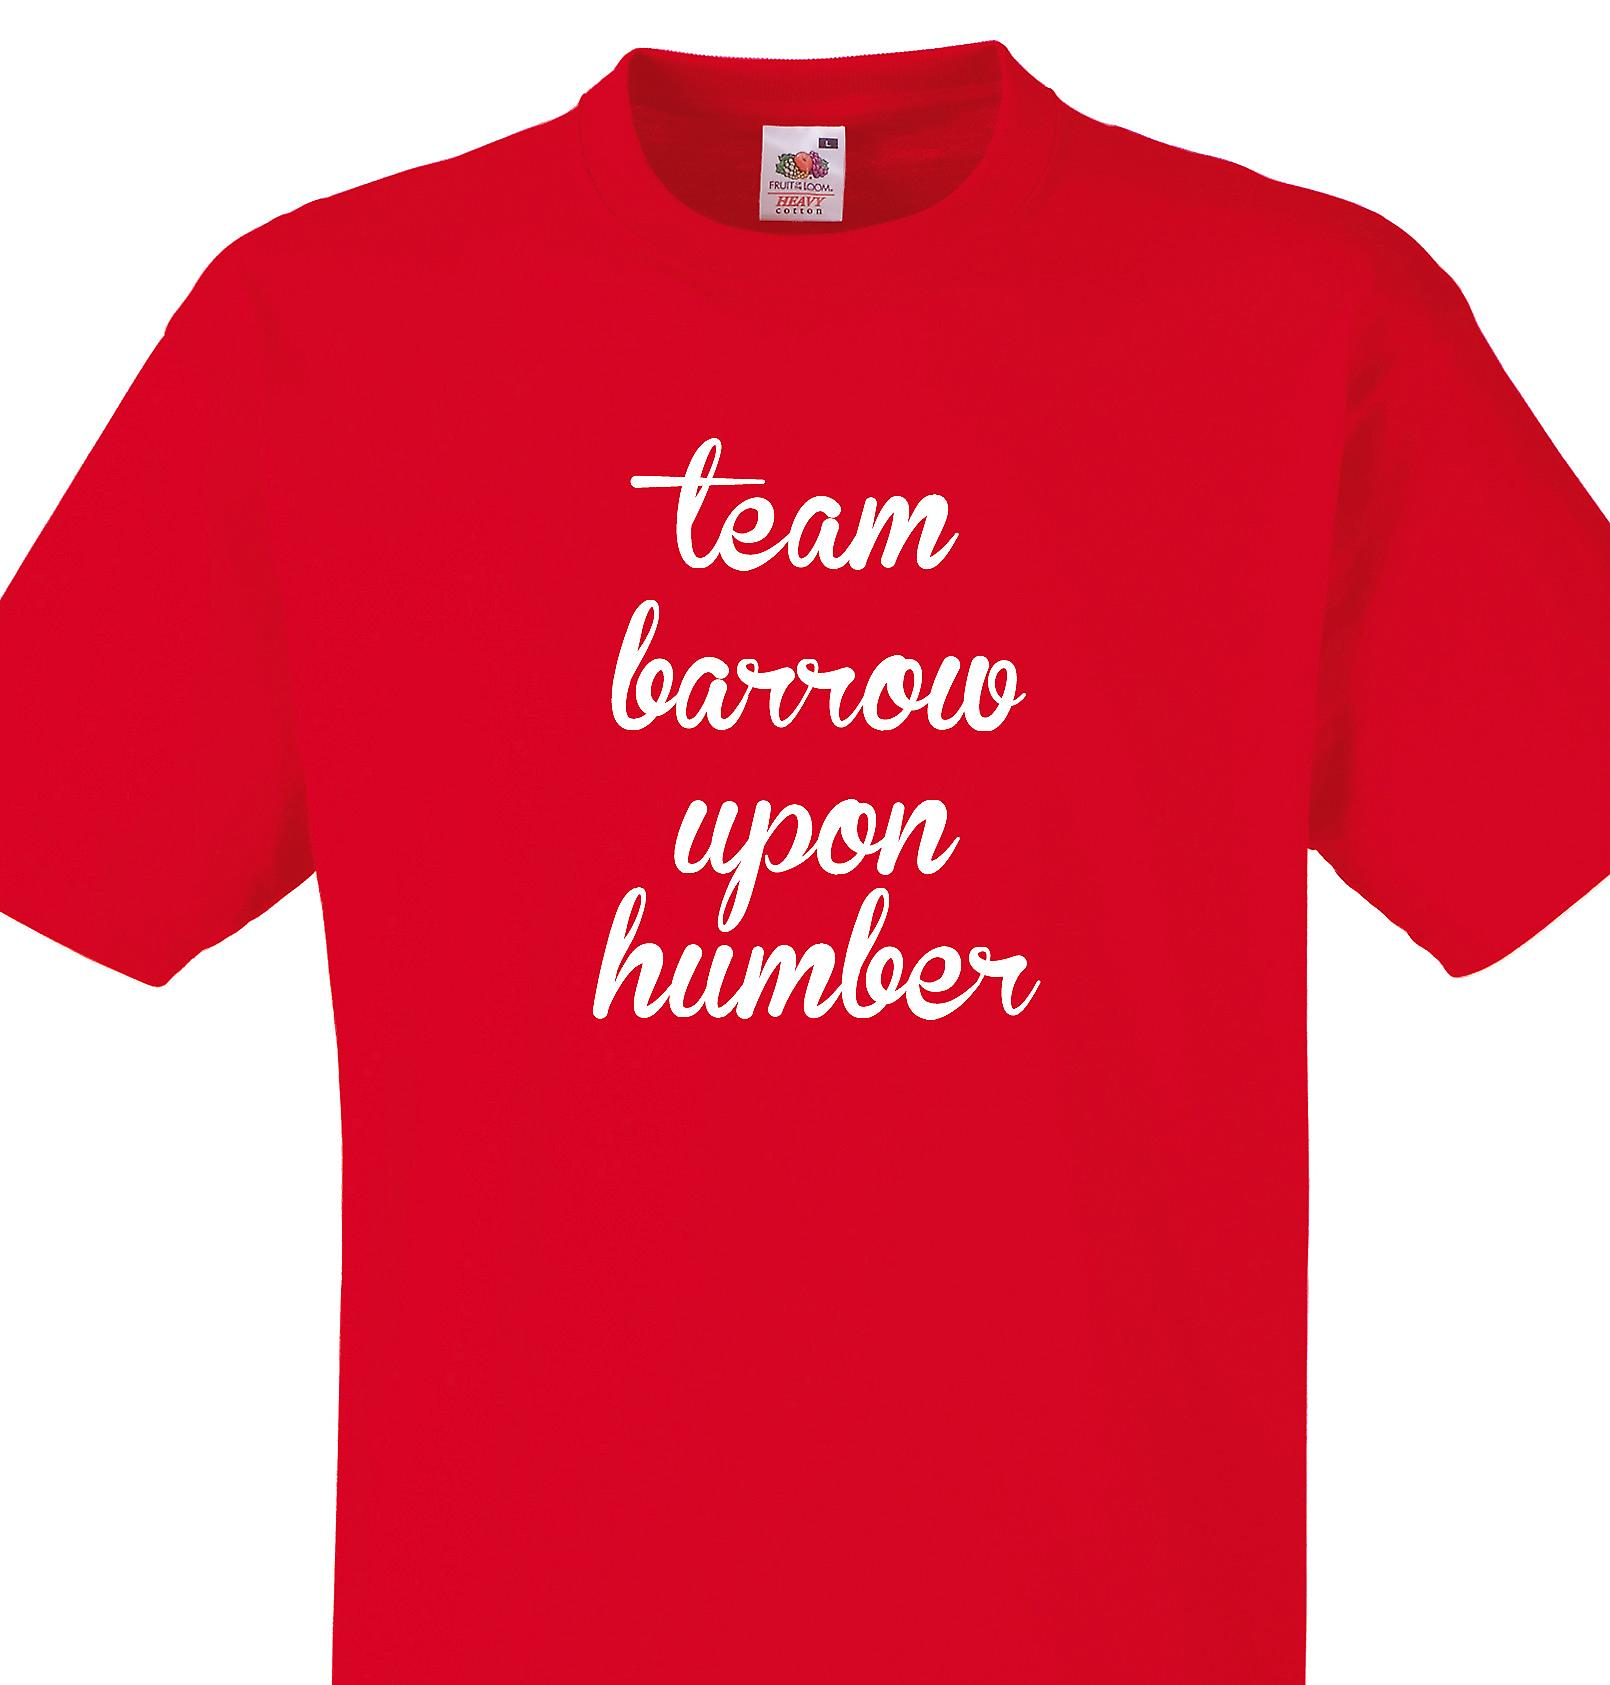 Team Barrow upon humber Red T shirt